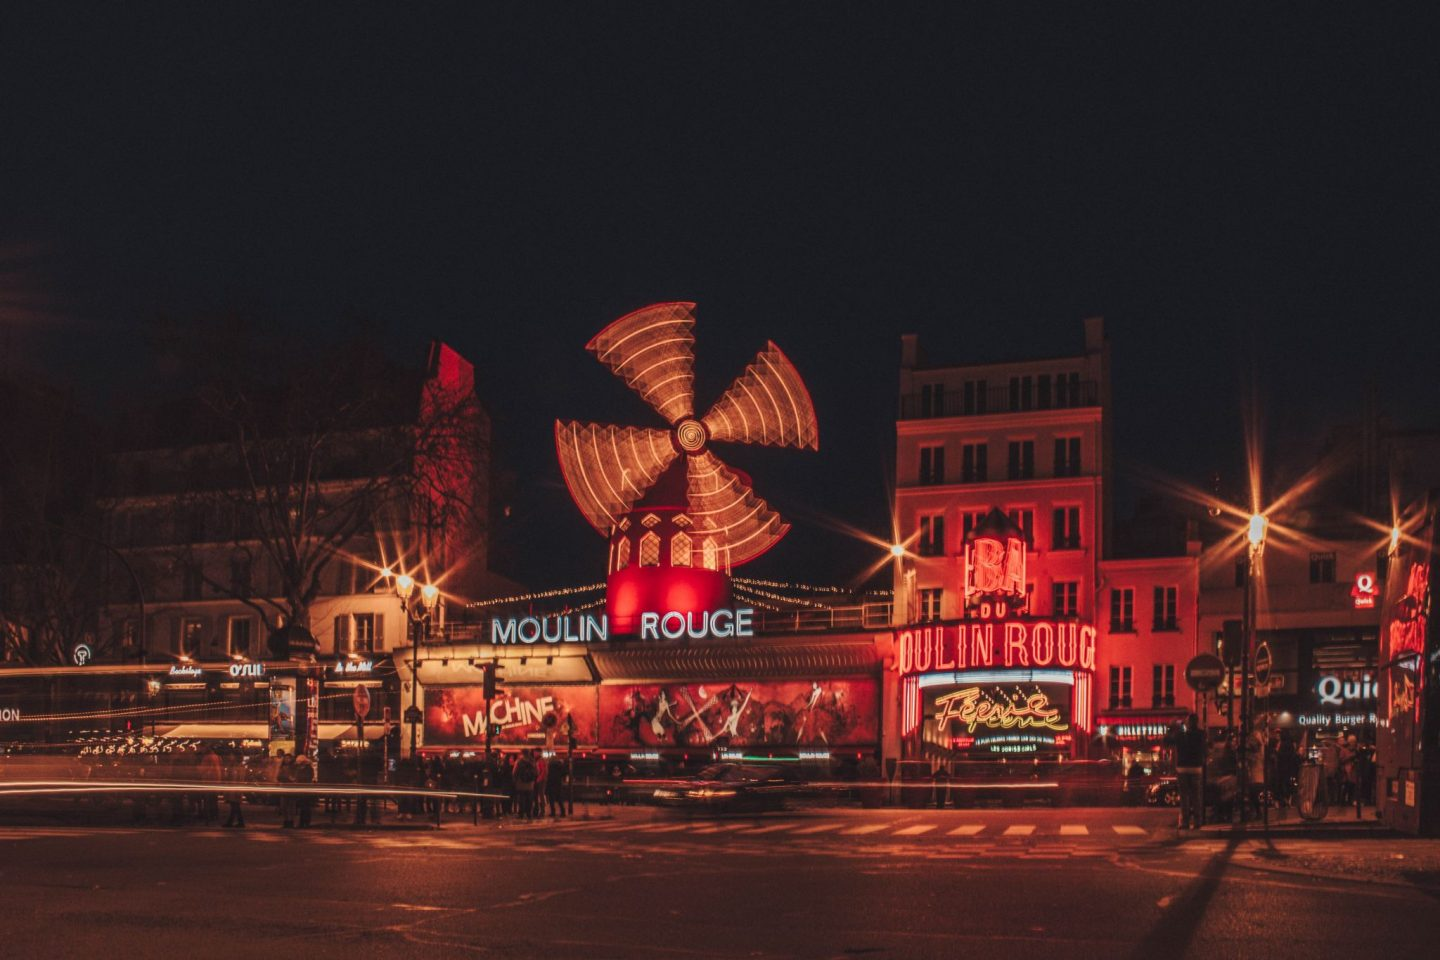 moulin rouge travel blog